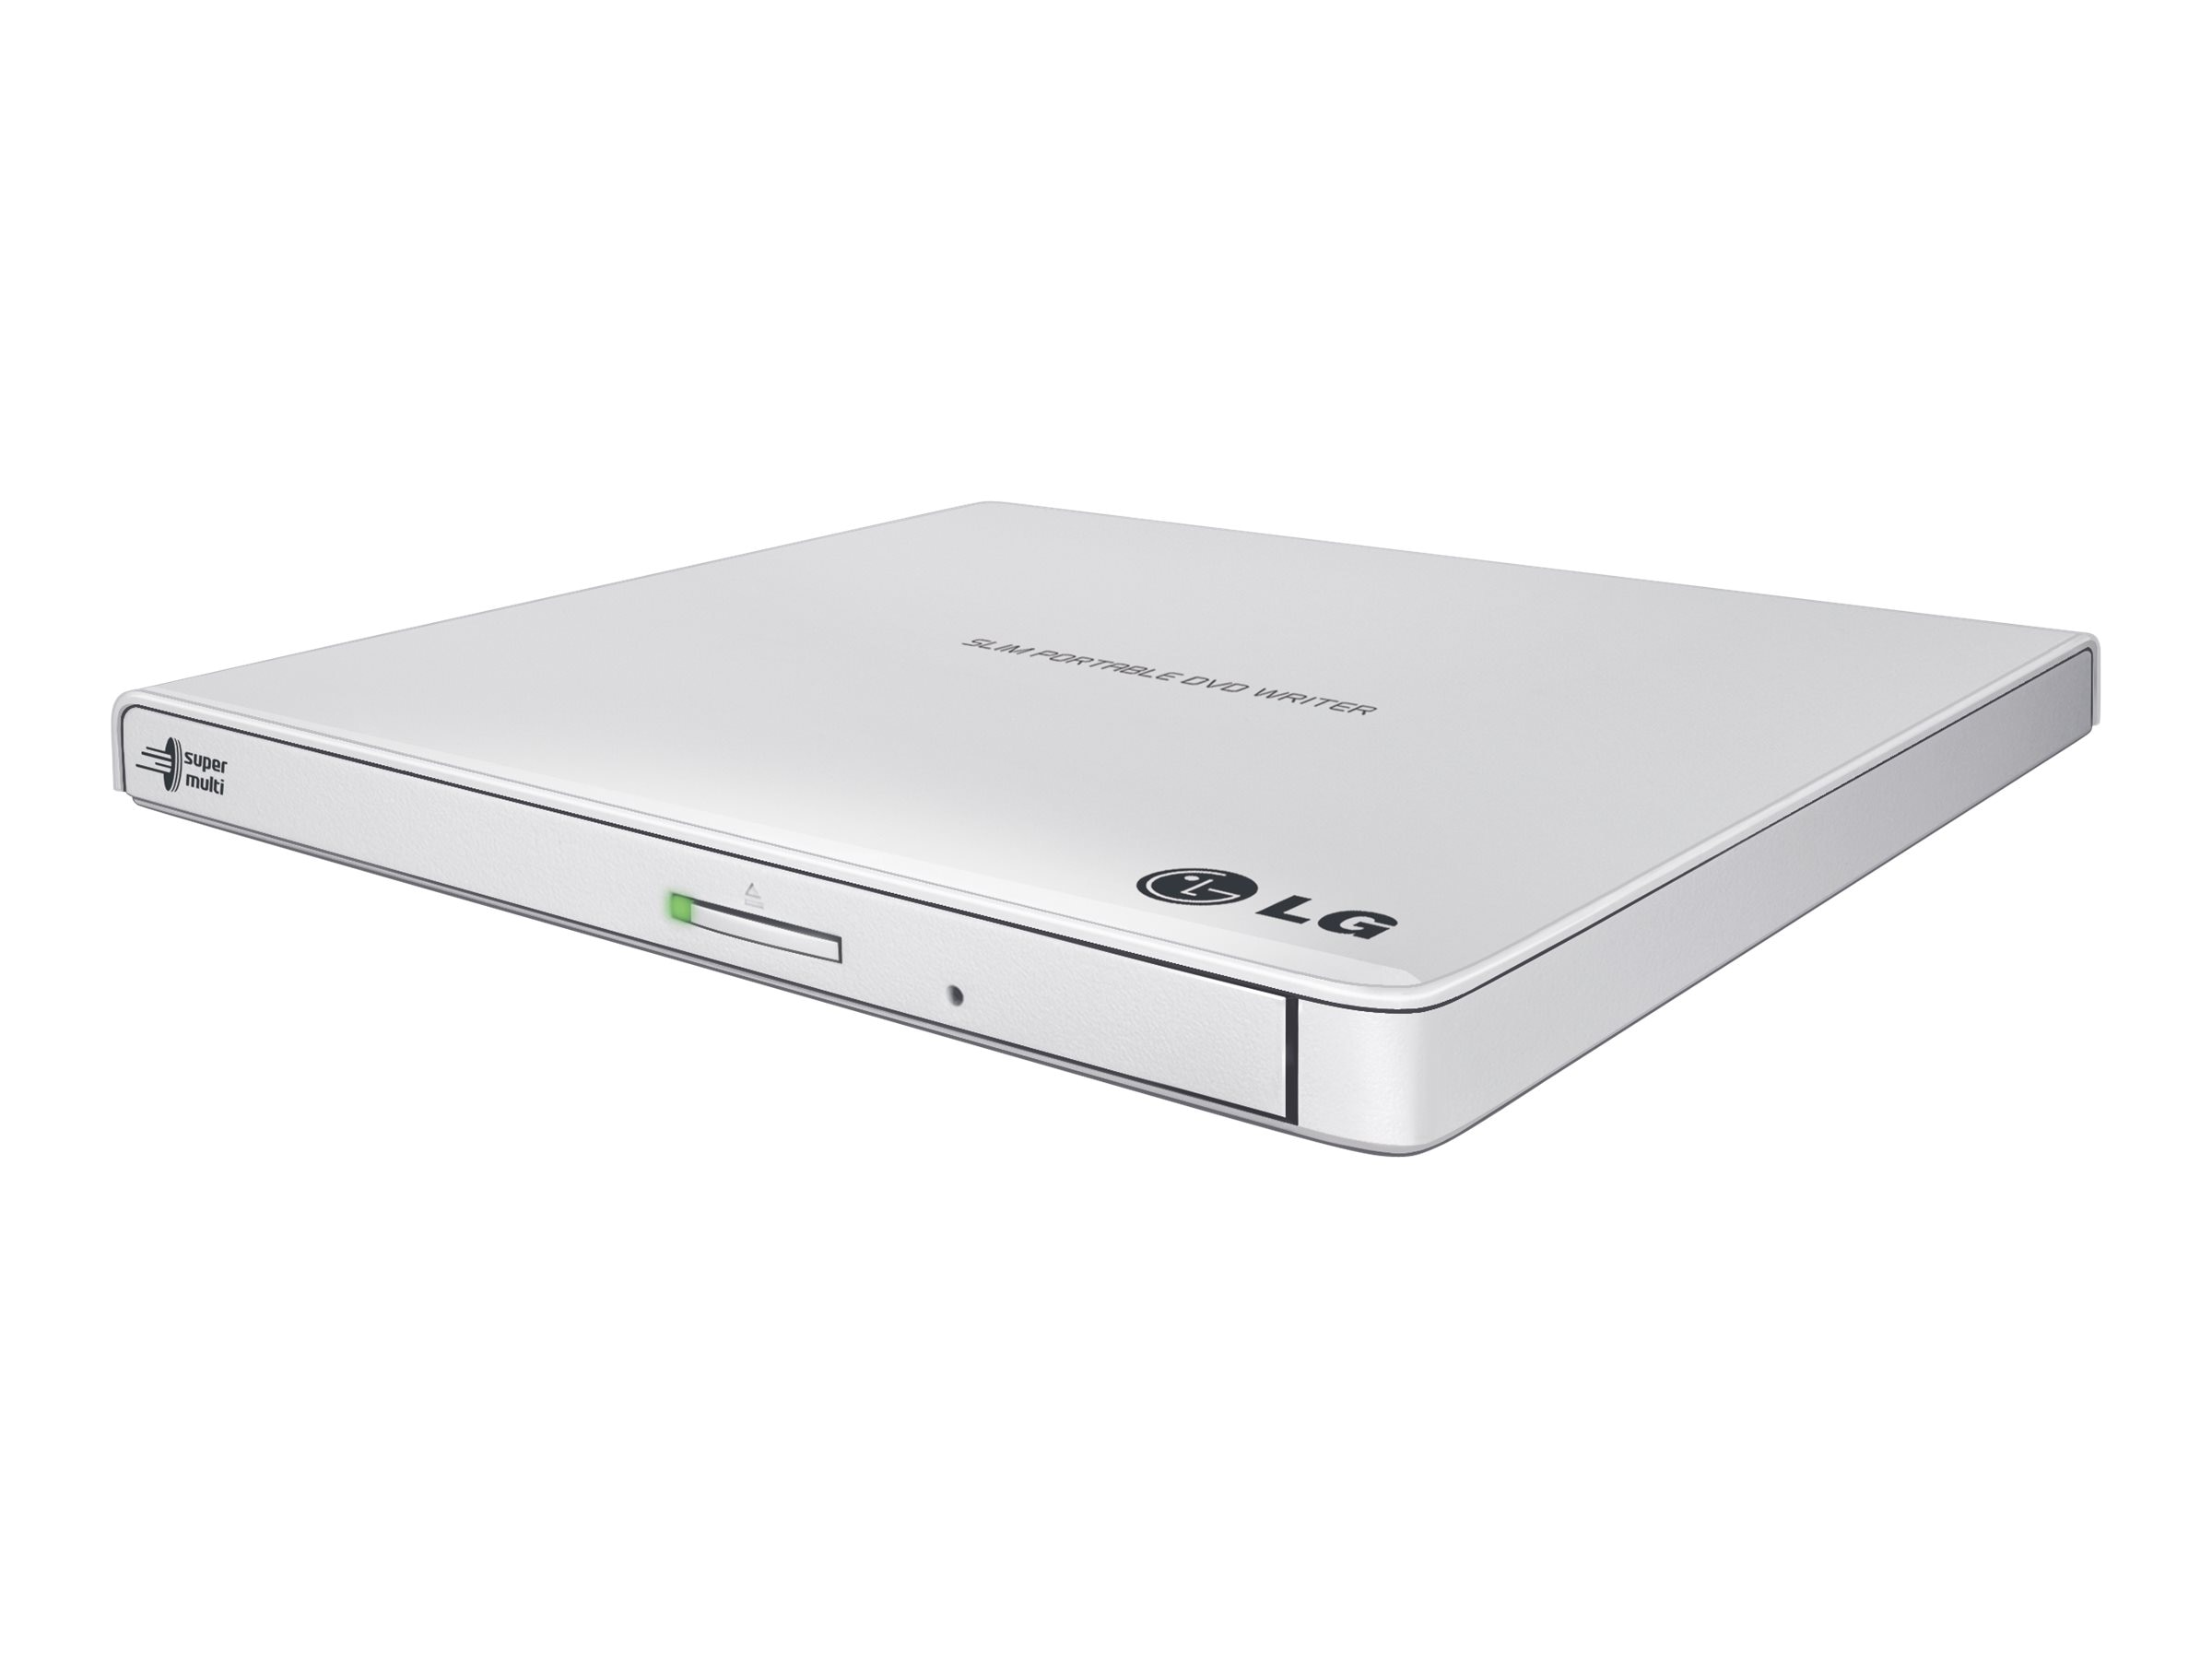 LG Ultra-Slim Portable DVD Burner & Drive w  M-DISC Support - White